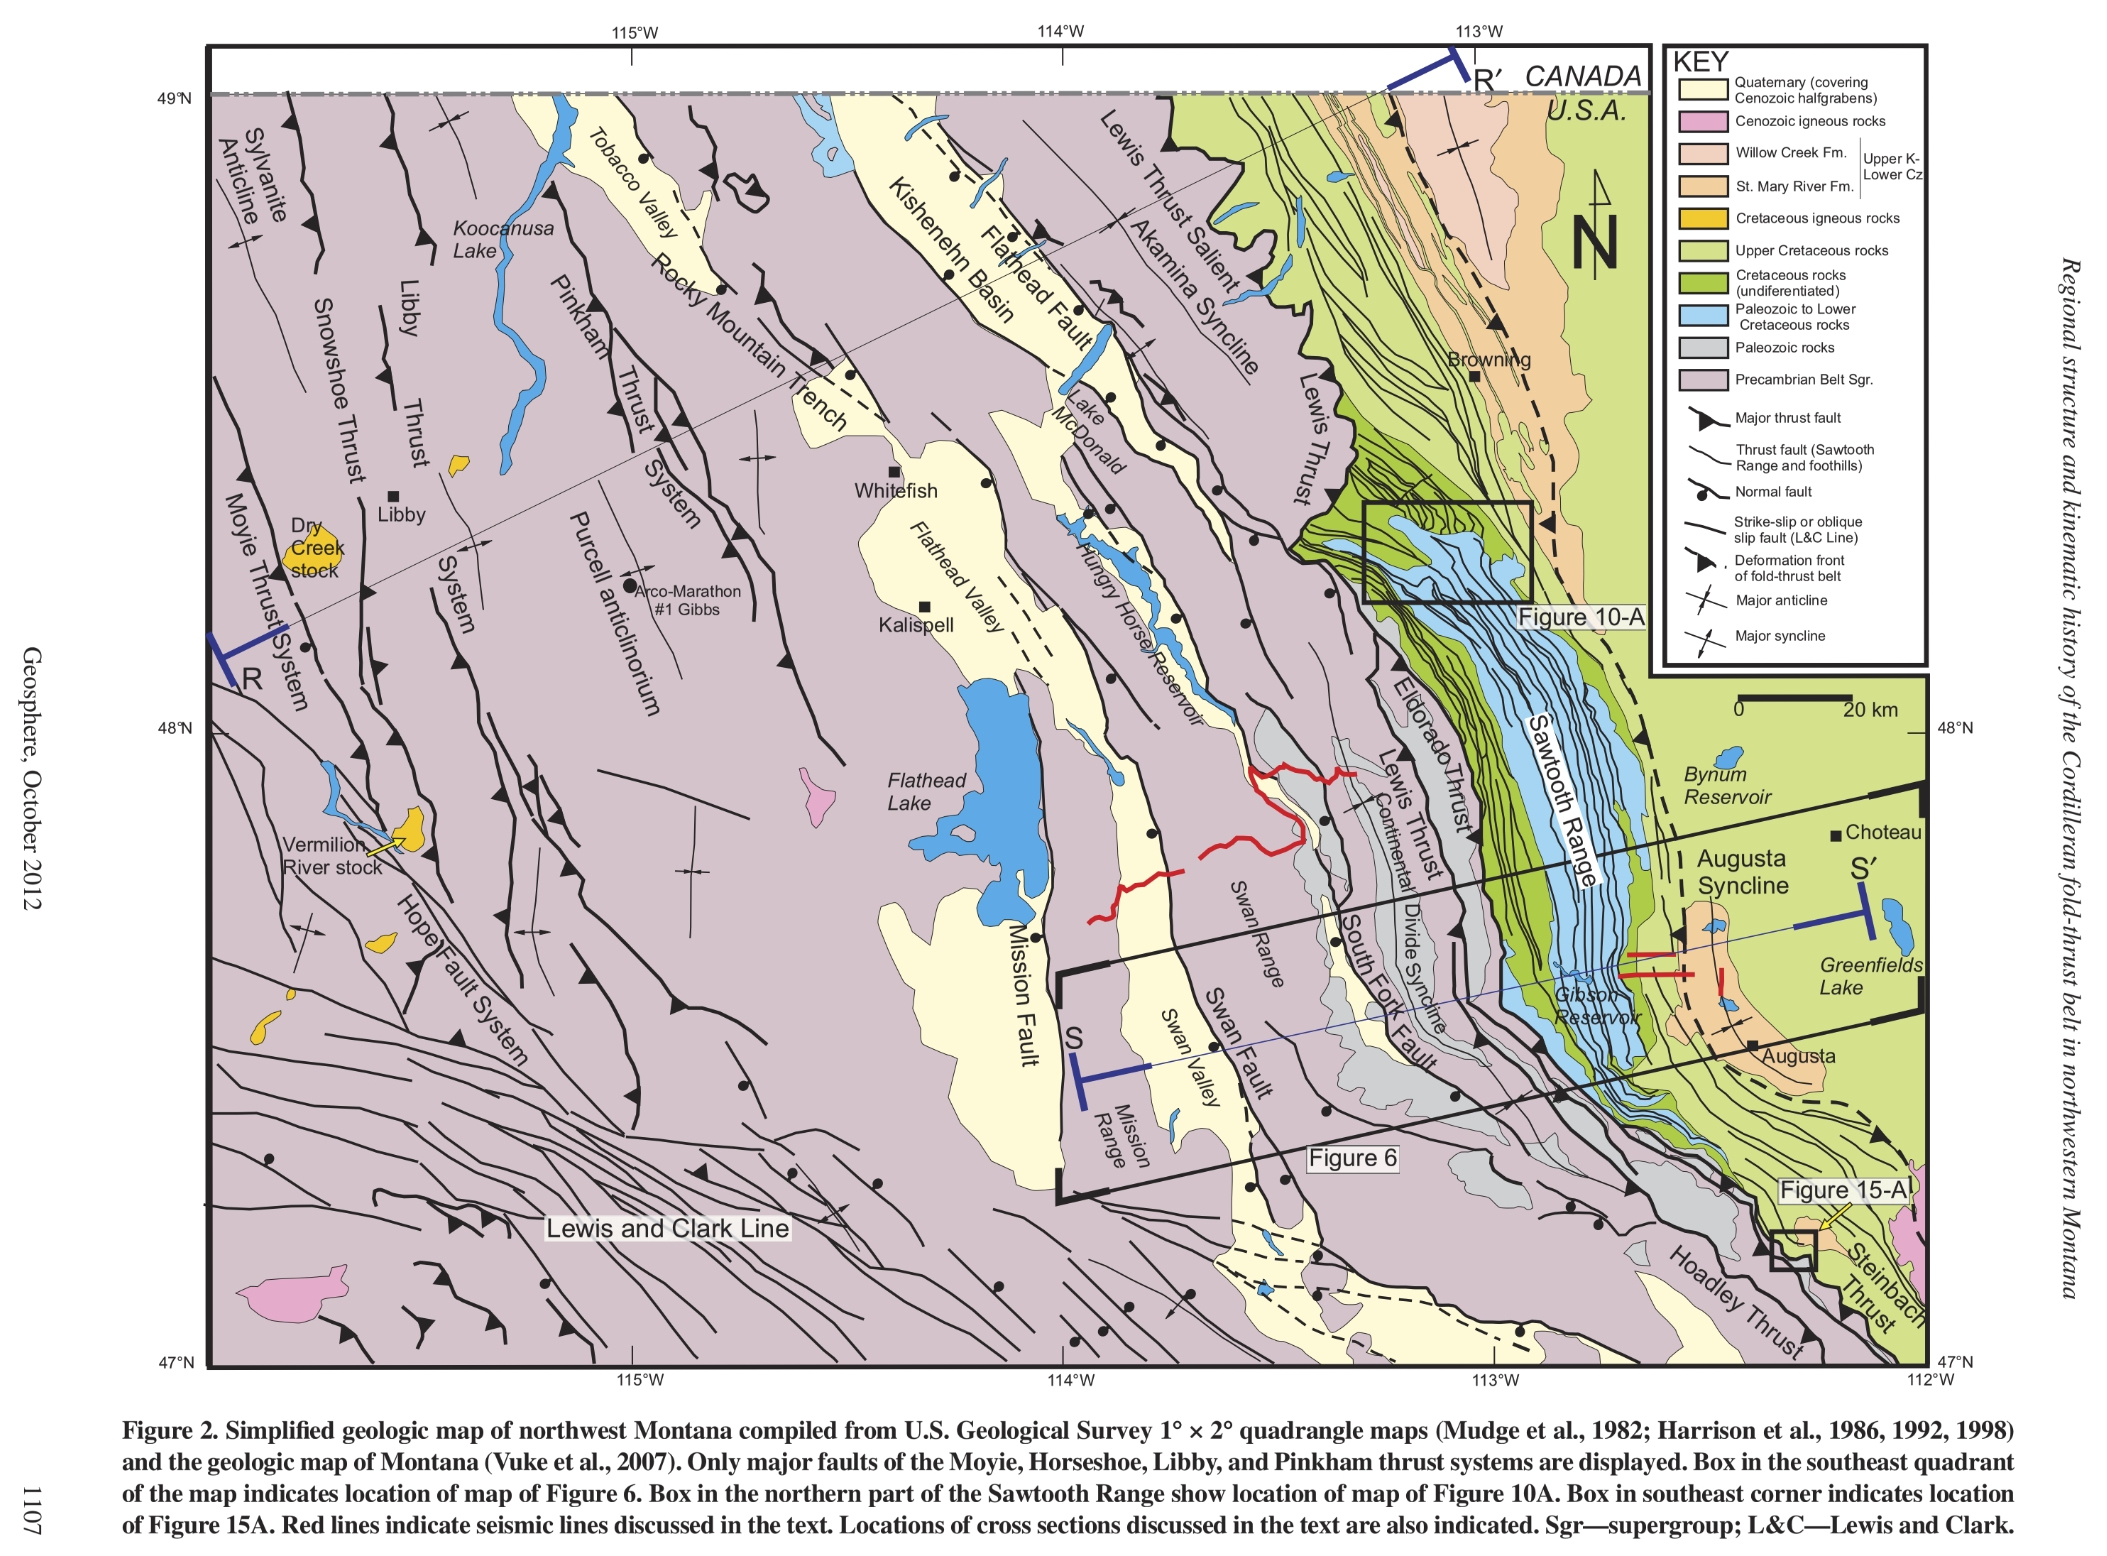 Northwest Montana thrust belt map, Geosphere, 2012